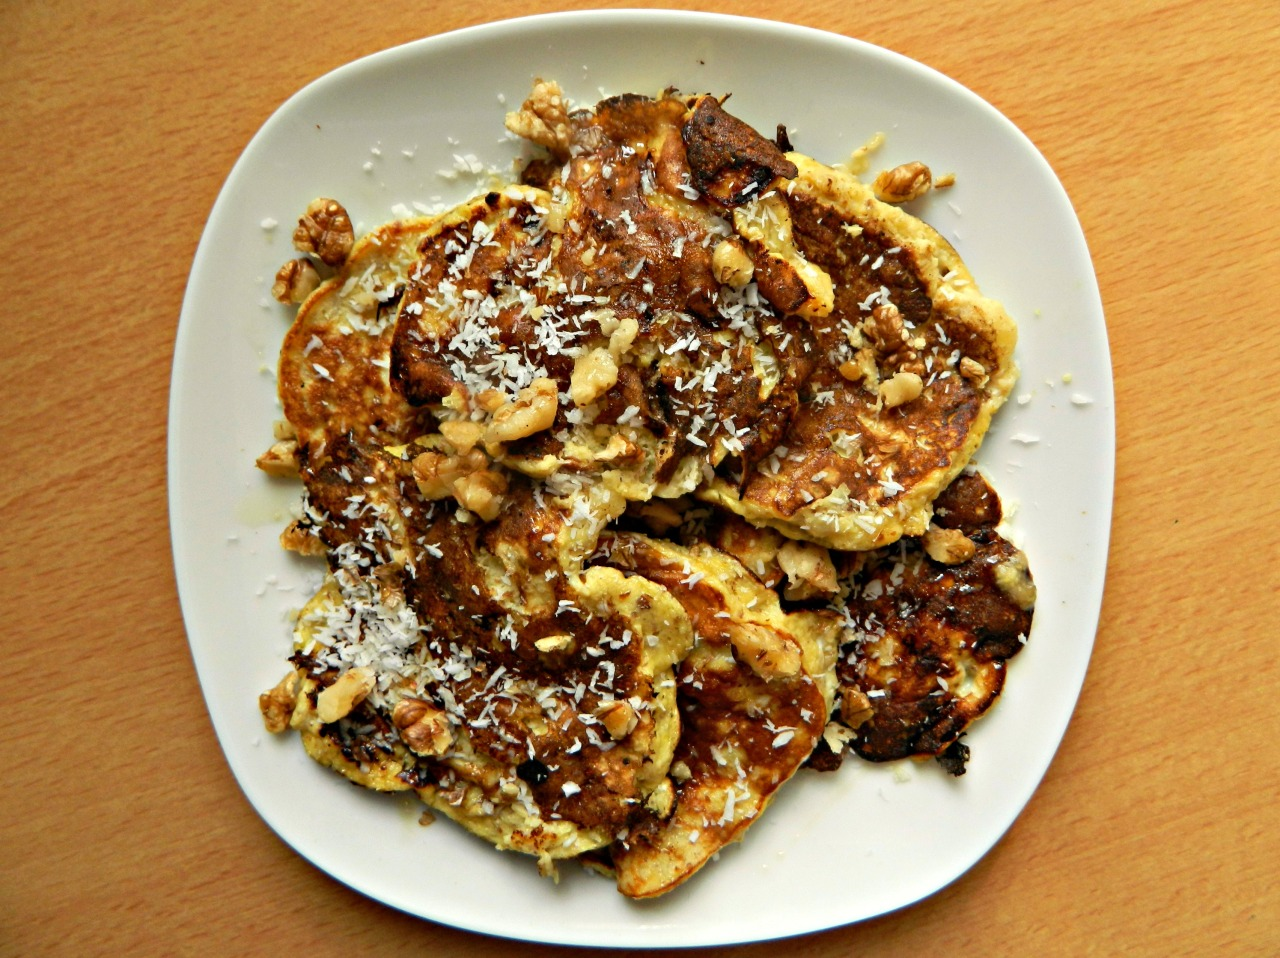 Banana pancakes (2 small bananas, mashed, 2 eggs, 3 tbsps ground almonds, 1 tsp flaxseed, cinnamon and vanilla) with coconut, agave and crushed walnuts cooked in coconut oil. I've been on a real pancake kick lately - I just haven't been wanting oatmeal. Weird!